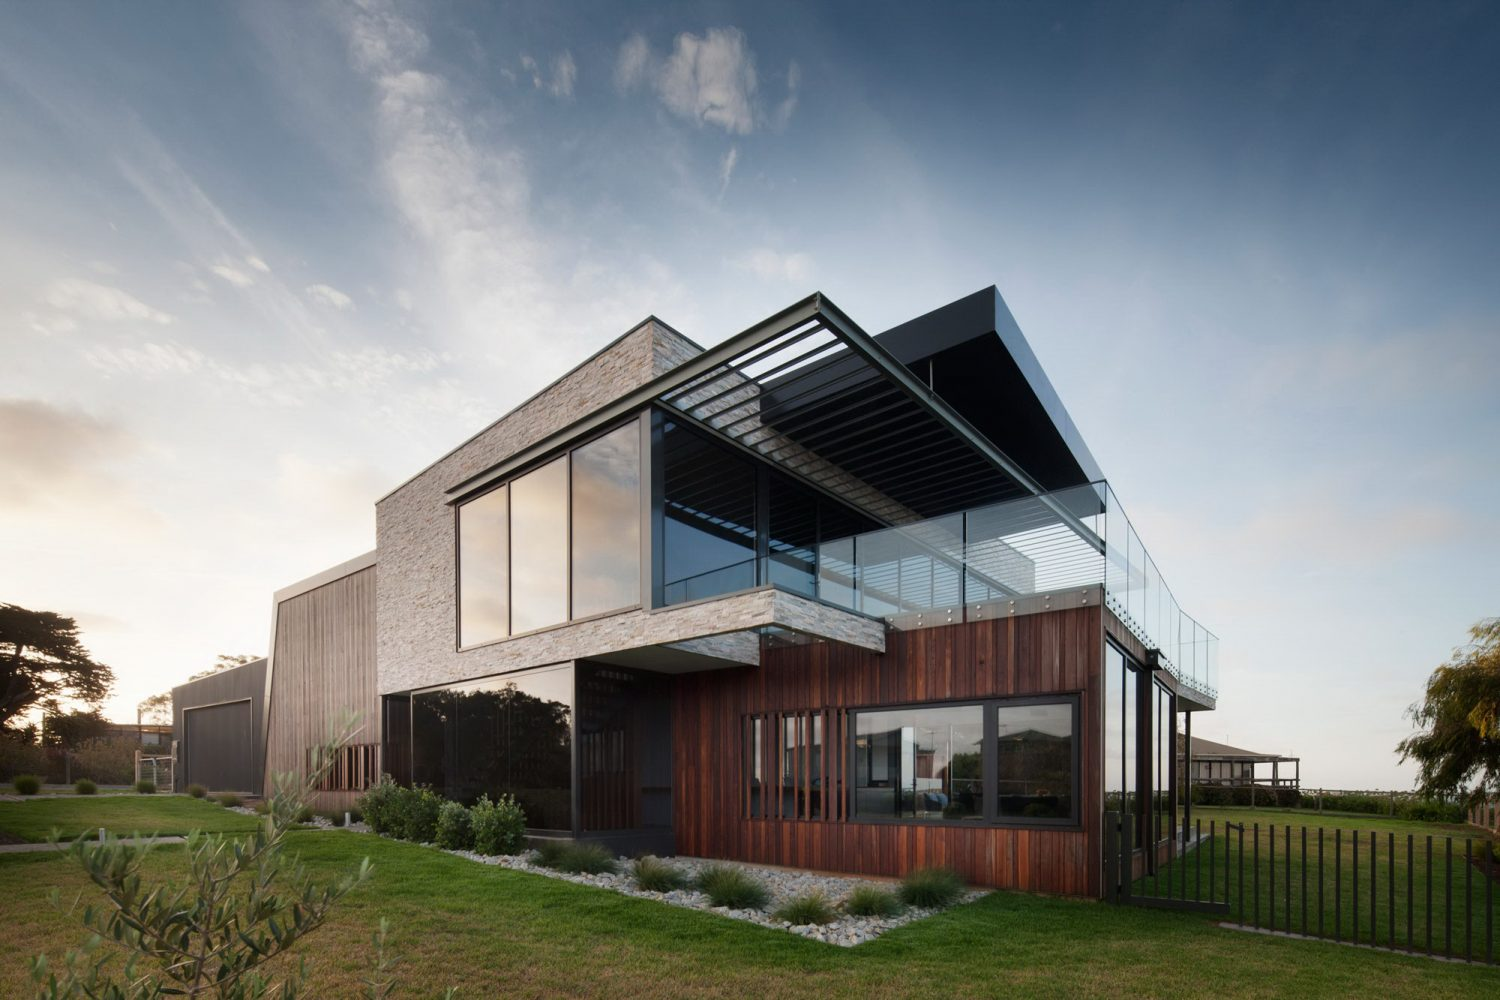 Rhyll House by Jarchitecture